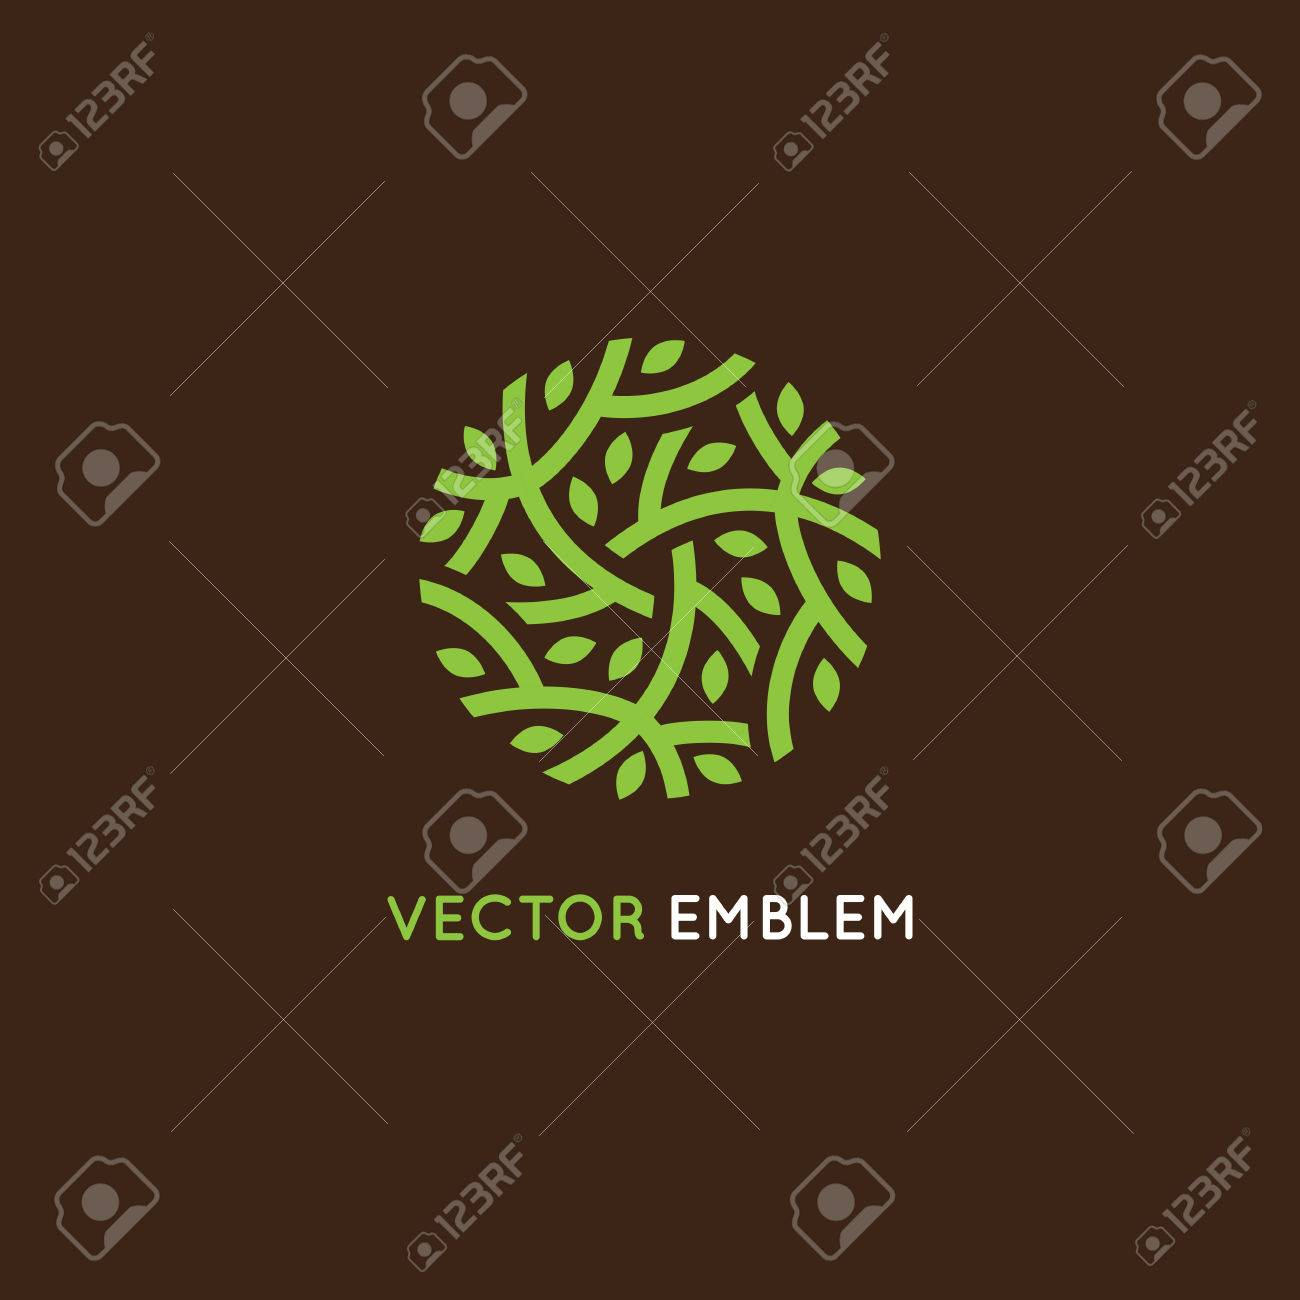 design template in green color - abstract sign end emblem for holistic medicine centers, organic food stores, natural cosmetics products - circle made with leaves and branches - 58771337